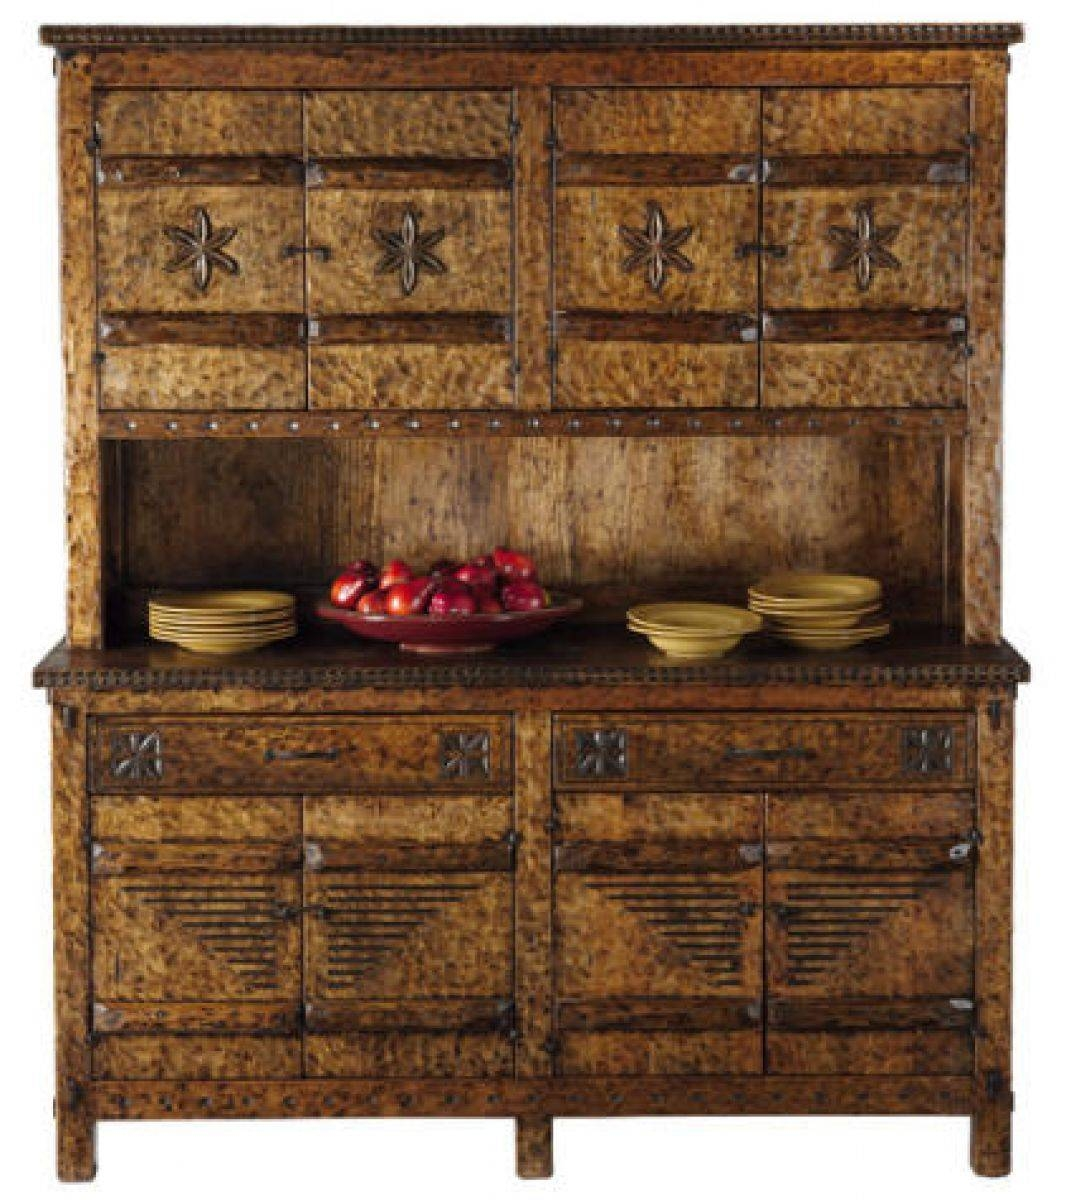 Tecolote Sideboard And Hutch: Southwest Furniture, Santa Fe Style Regarding Sideboards With Hutch (View 14 of 15)